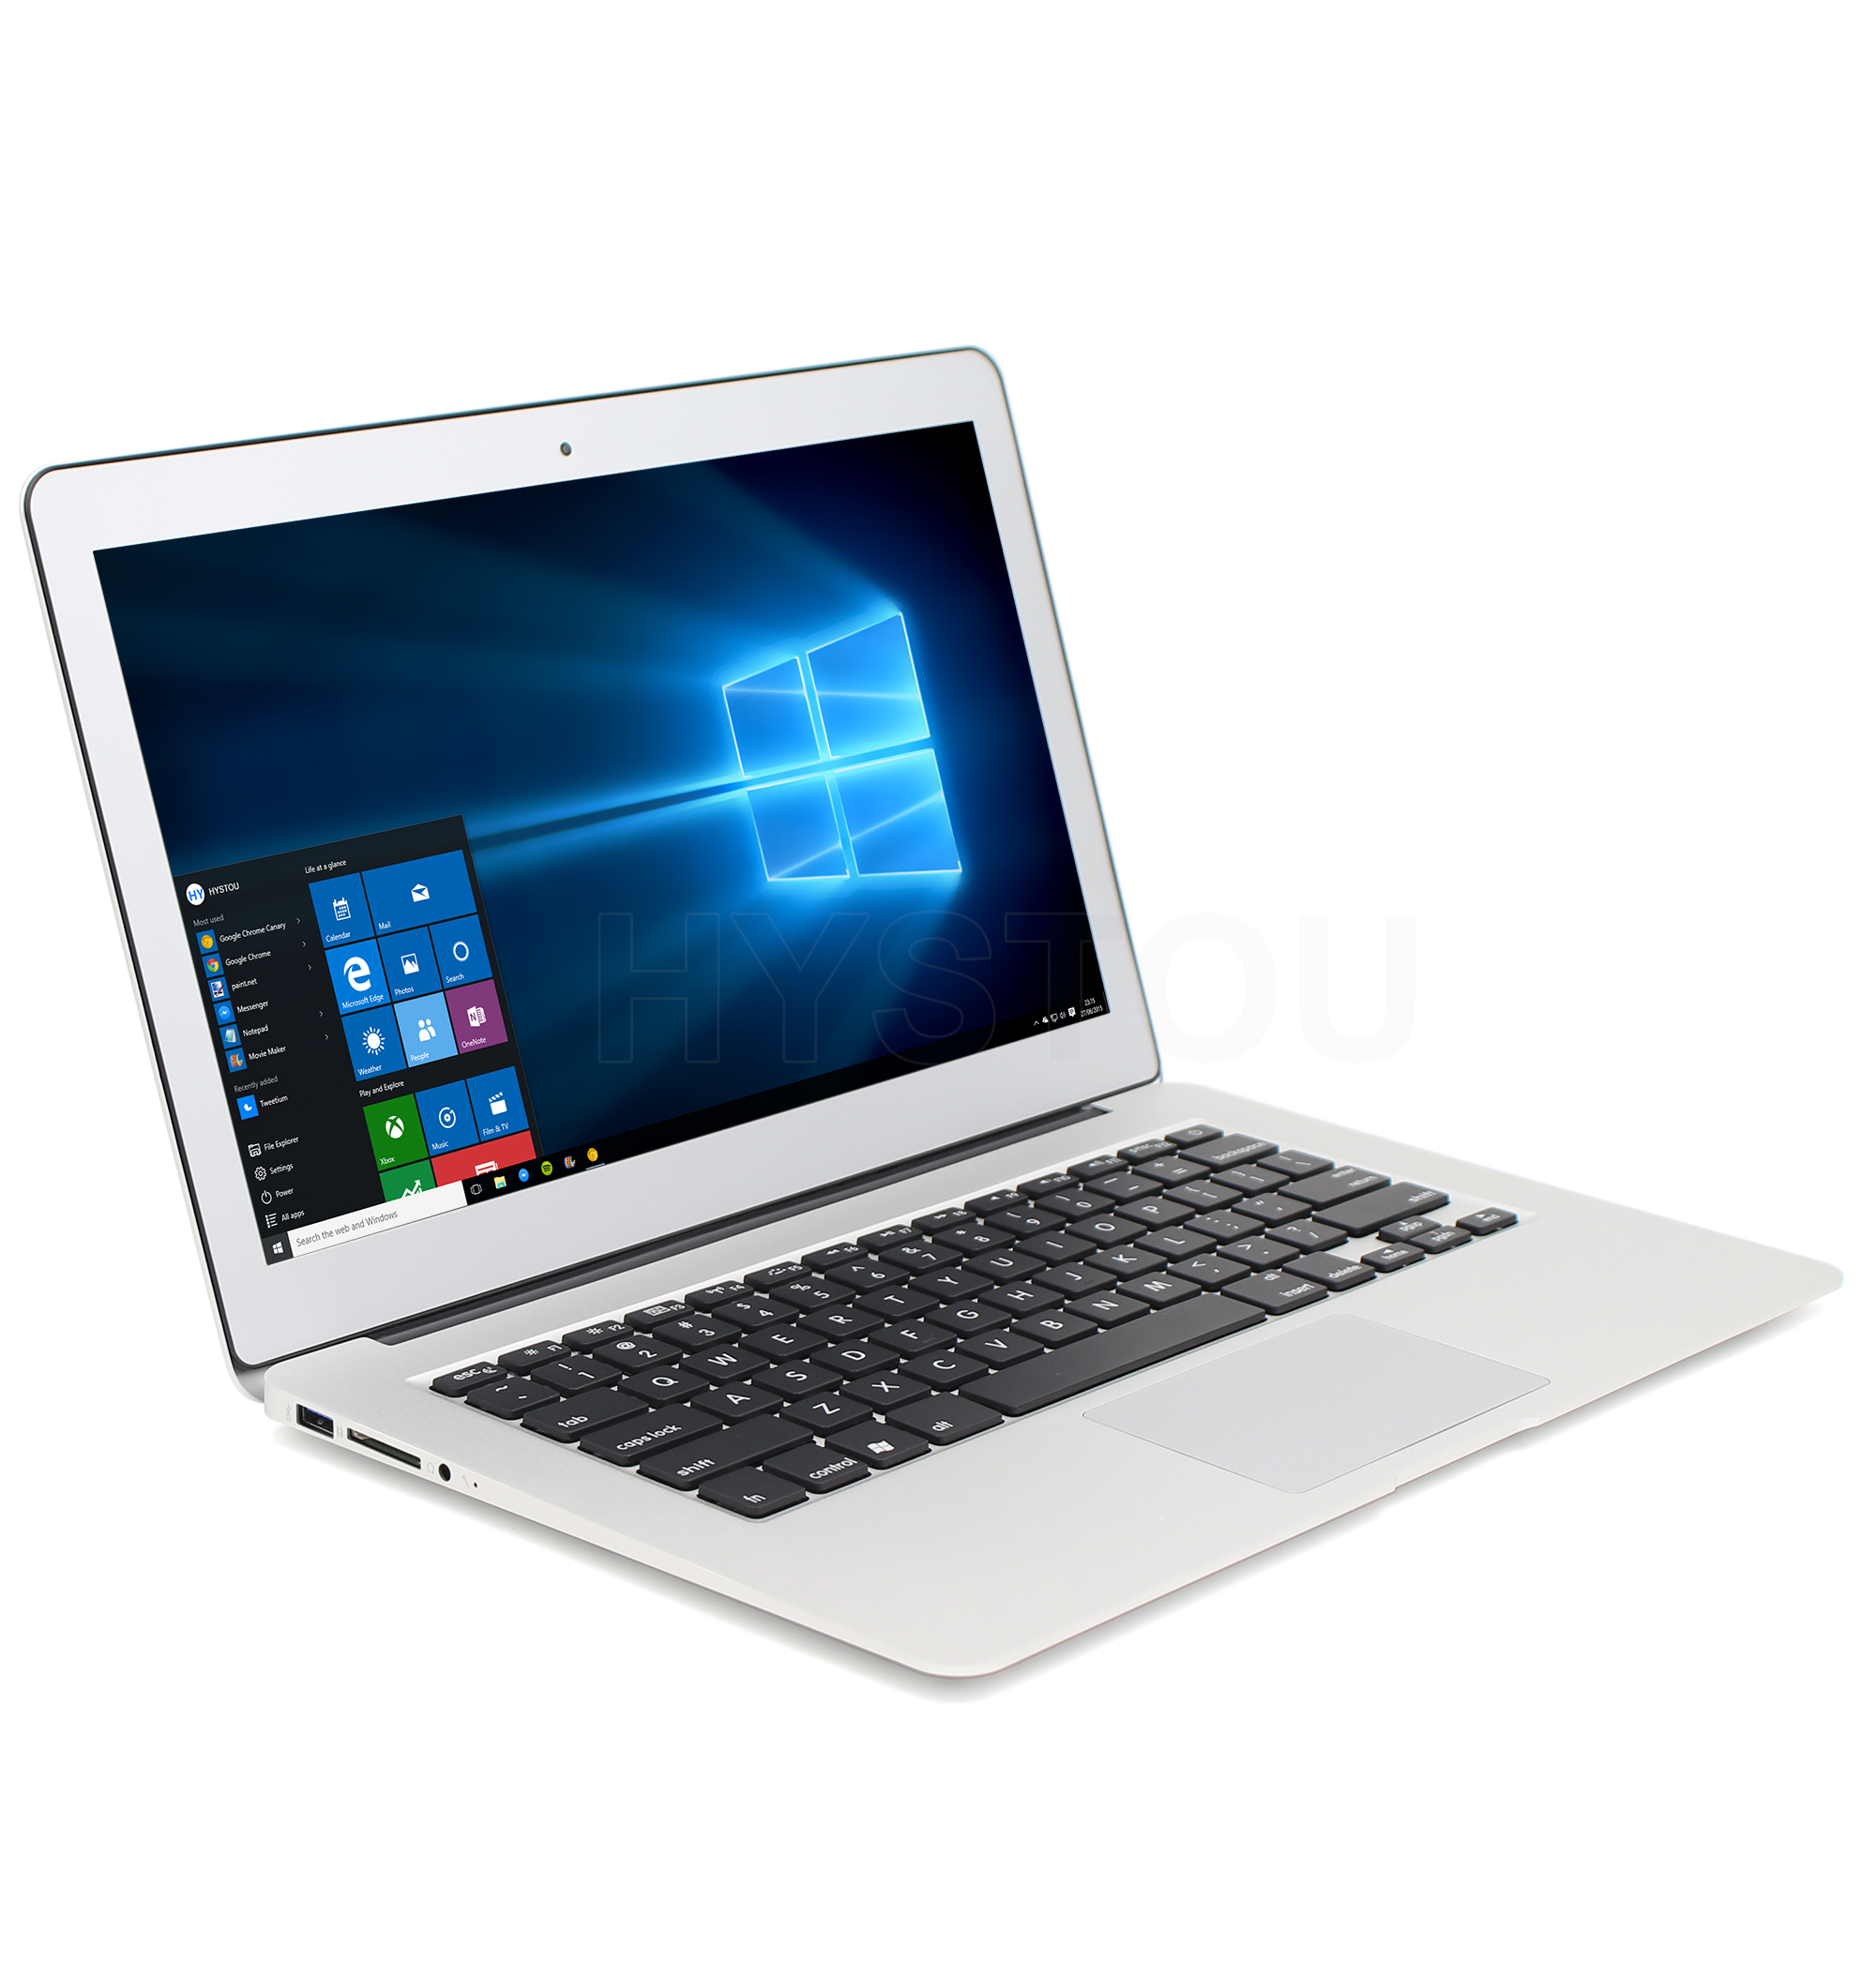 images/bulk-wholesale/HYSTOU-i5-5200U-Laptop-Fanless-Design-Universal-OS-Support-Ultra-Slim-Aluminum-Body-Intel-Core-i5-5200-7000mAh-8GB-RAM-plusbuyer_93.jpg